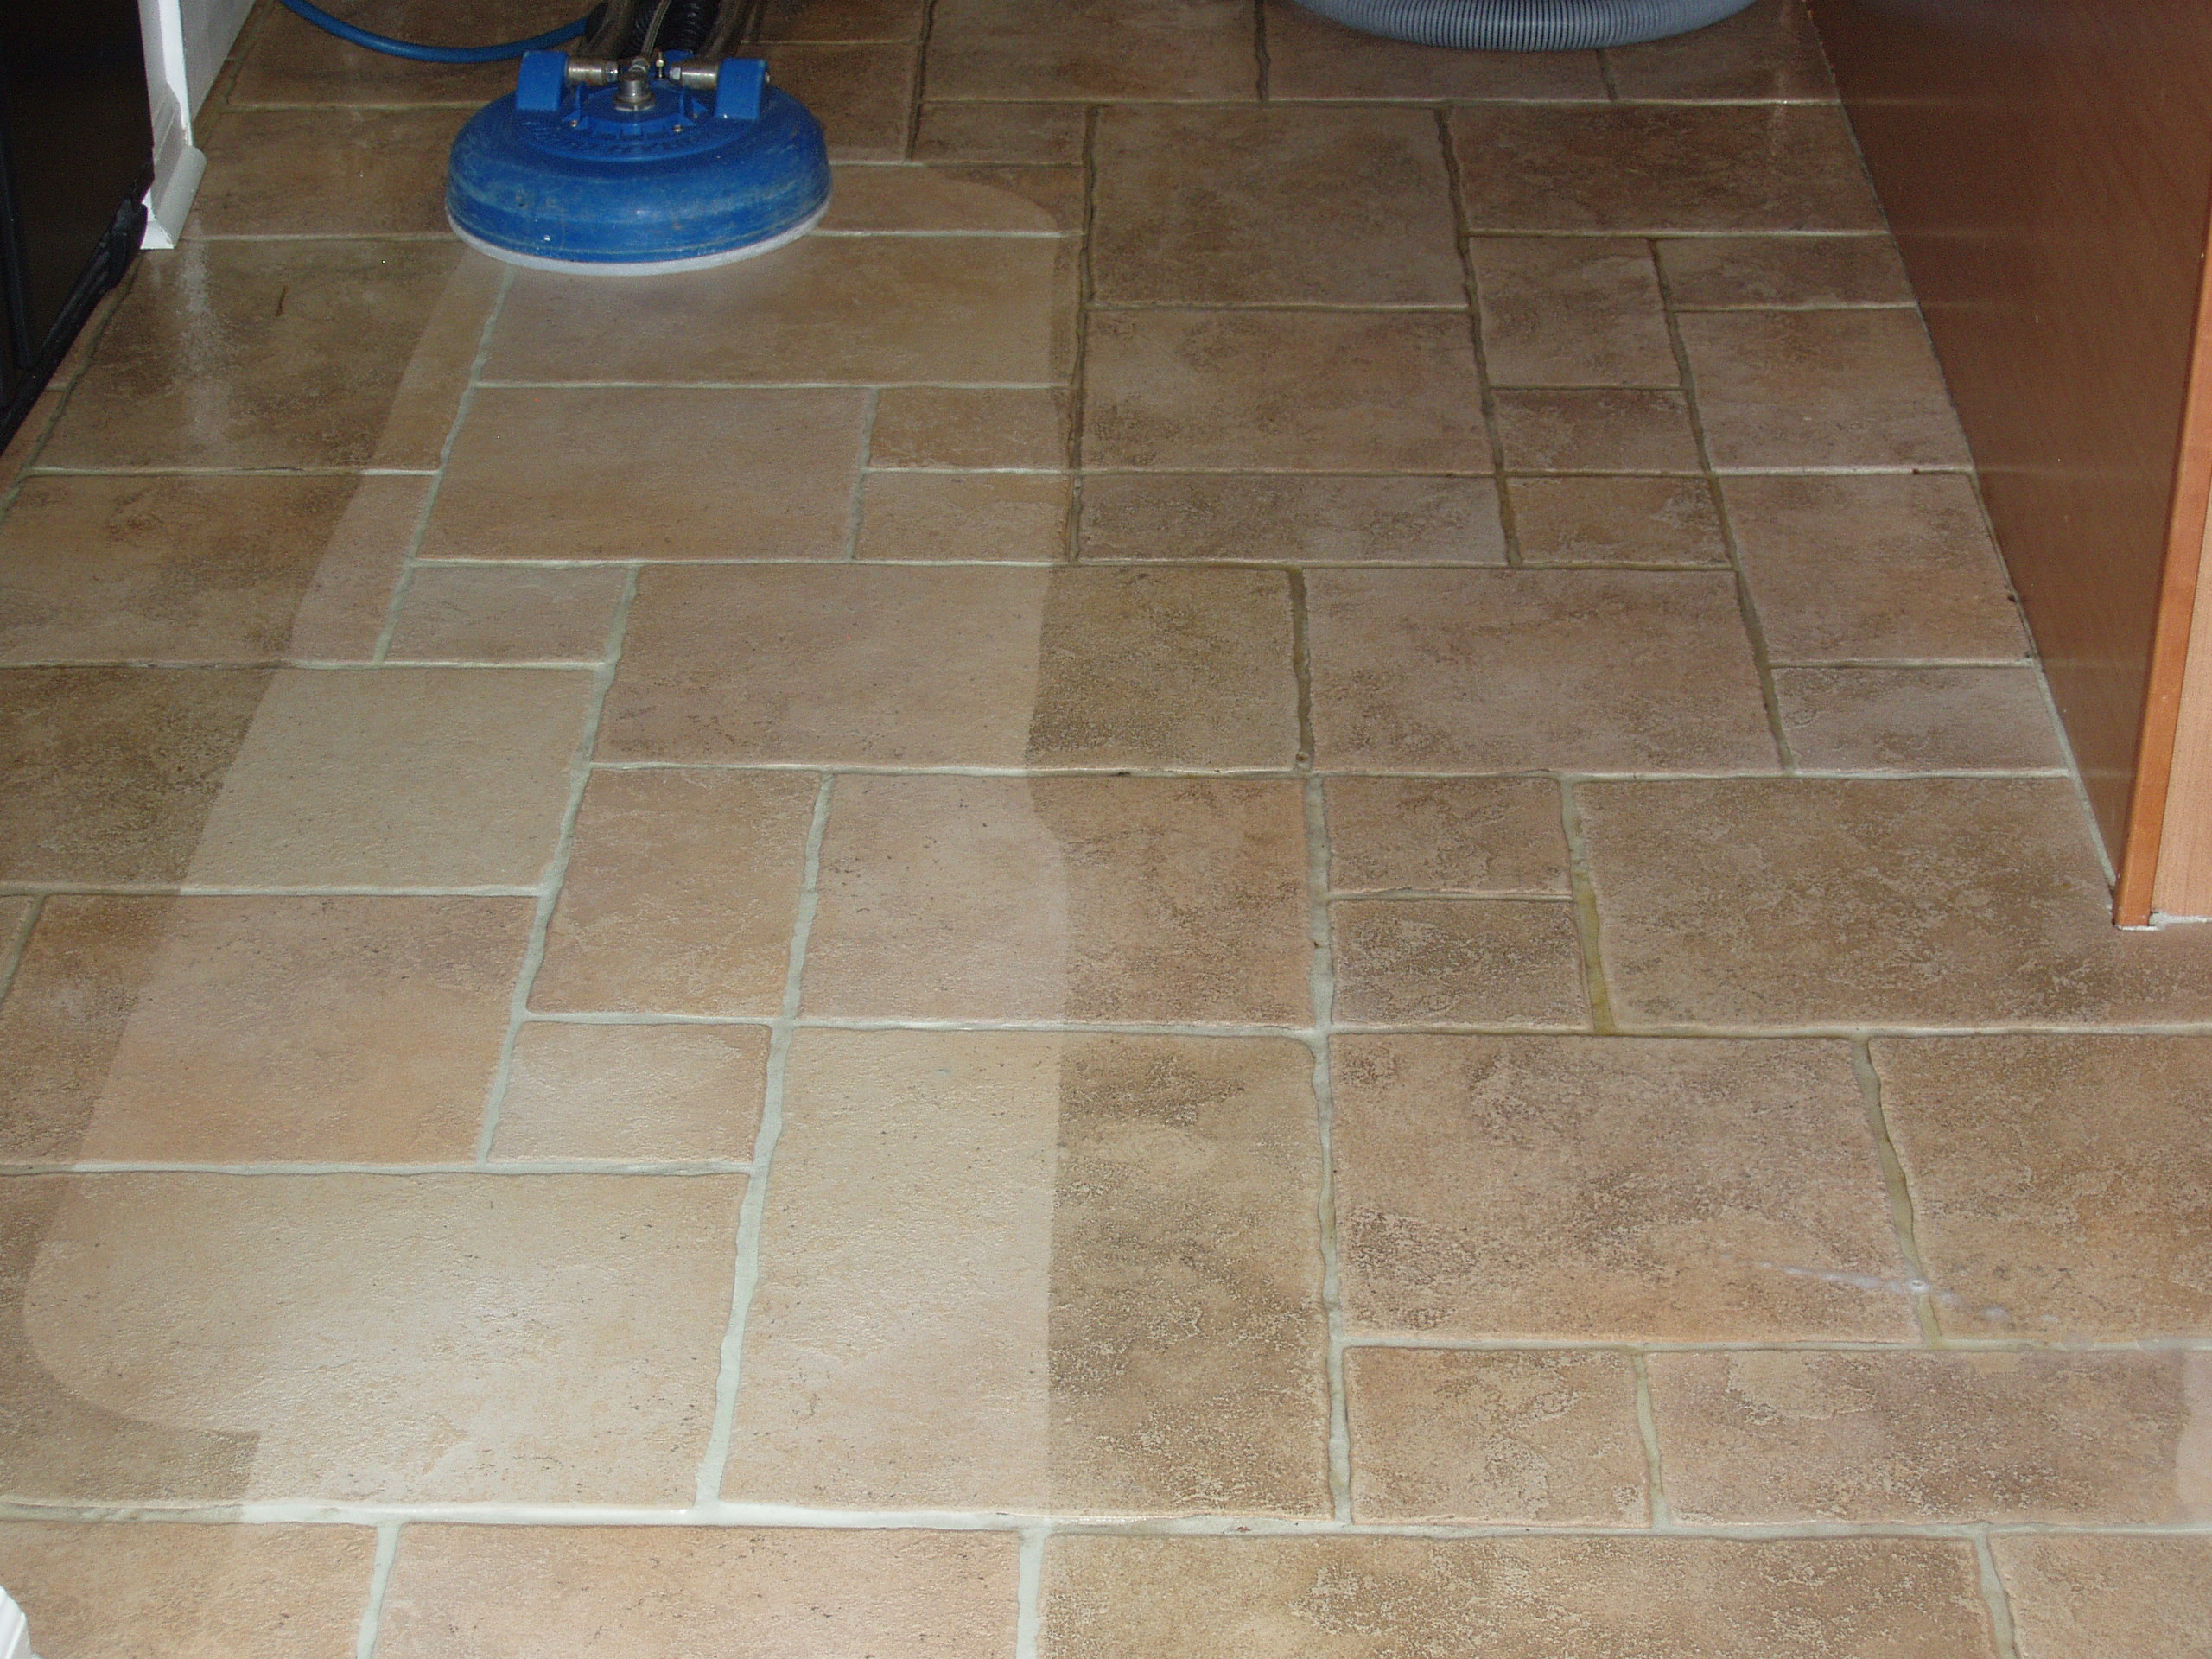 Bio Tile Amp Grout Restoration Lake Zurich Il 60047